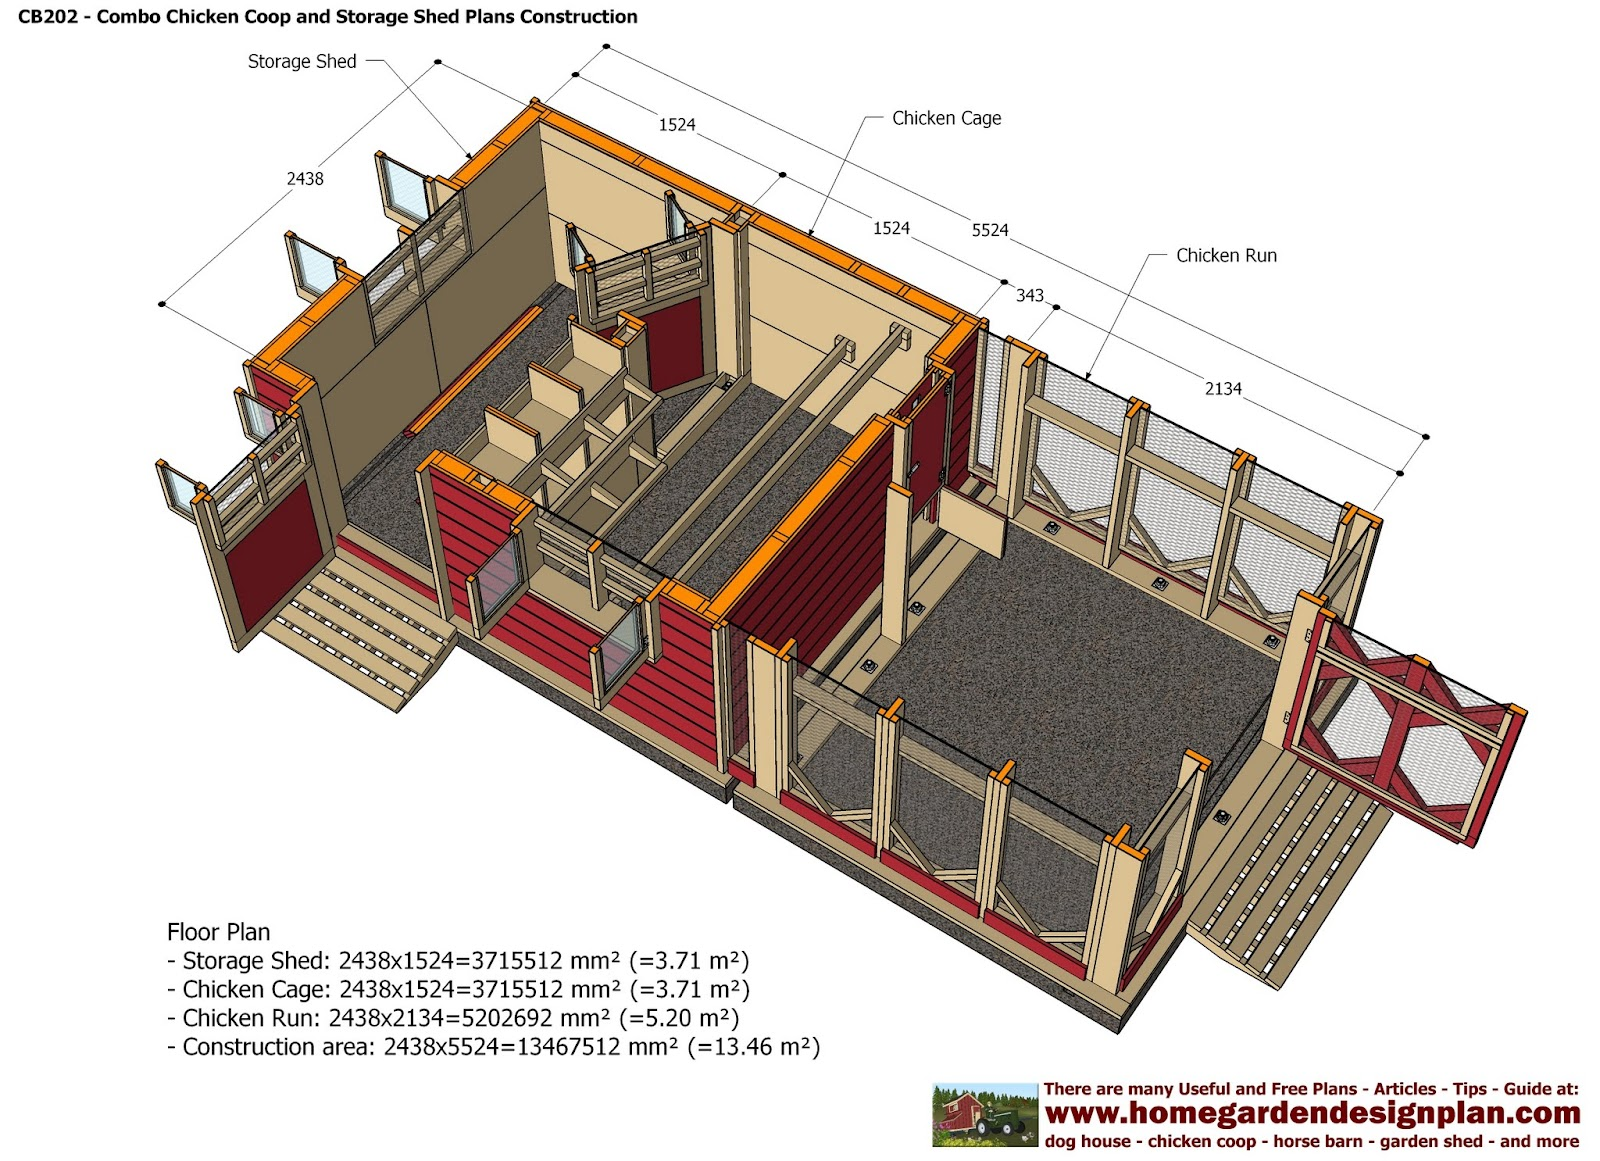 Home garden plans cb202 combo plans chicken coop plans construction garden sheds plans - Building a garden shed design ideas and plans ...